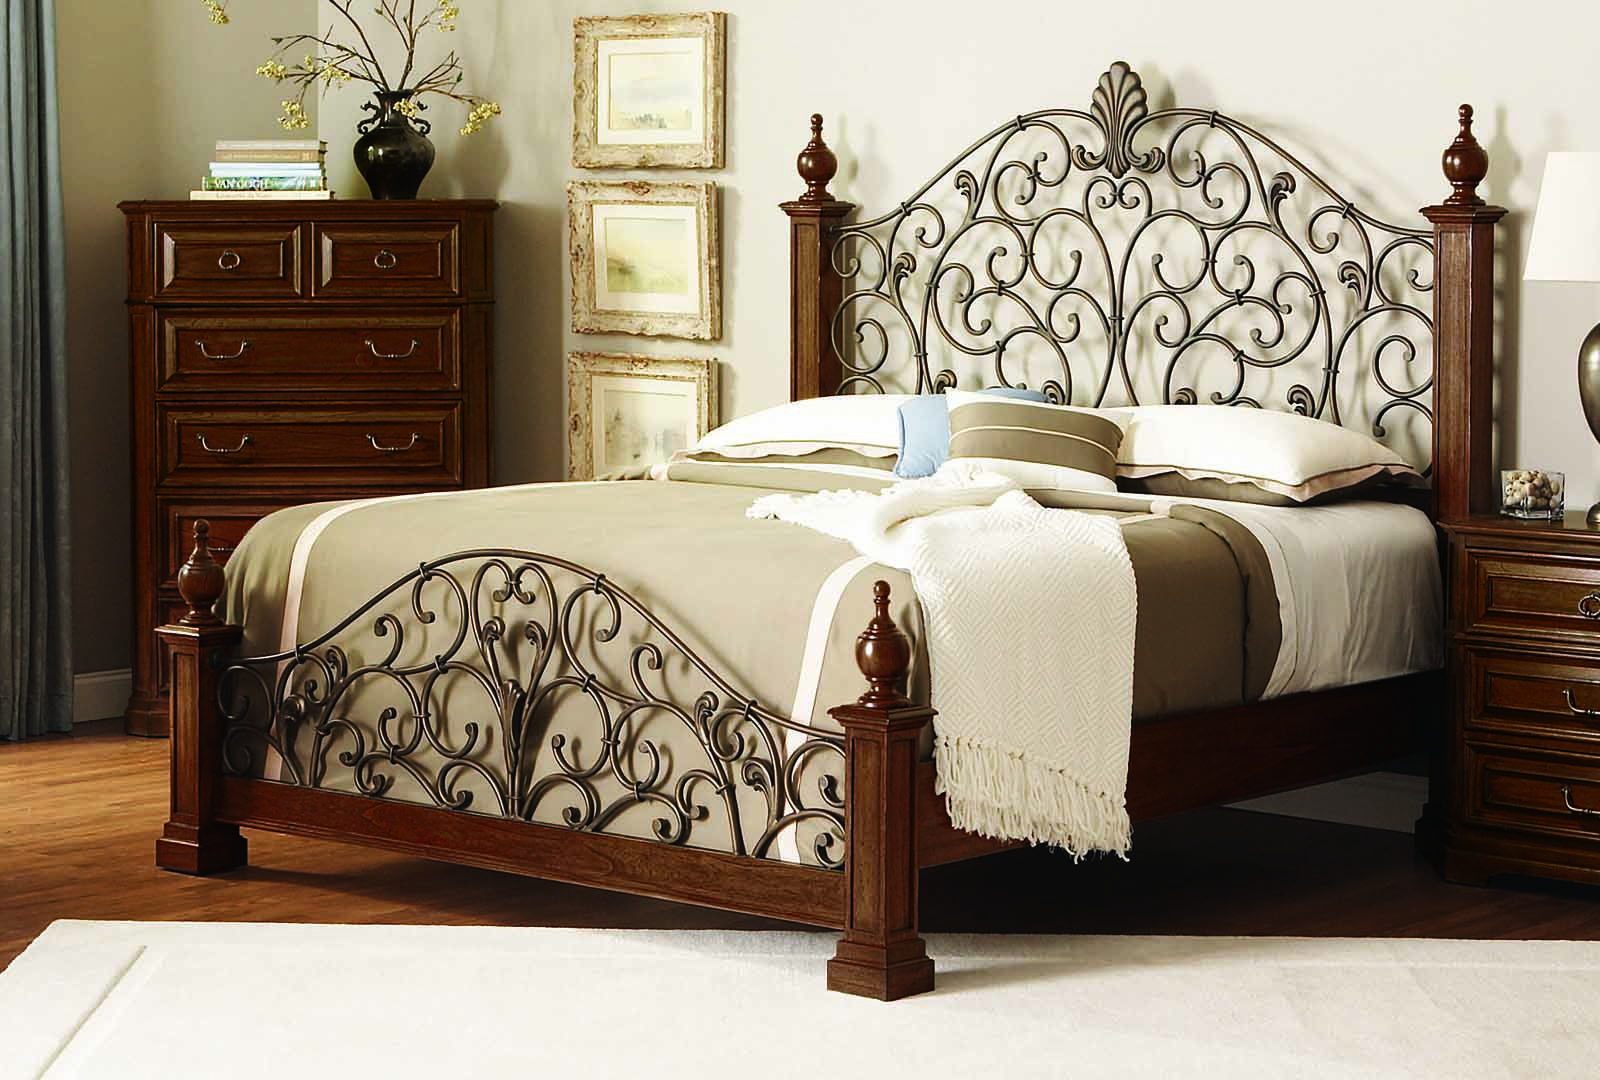 Coaster Edgewood Queen Panel Bed in Cherry Twin bed